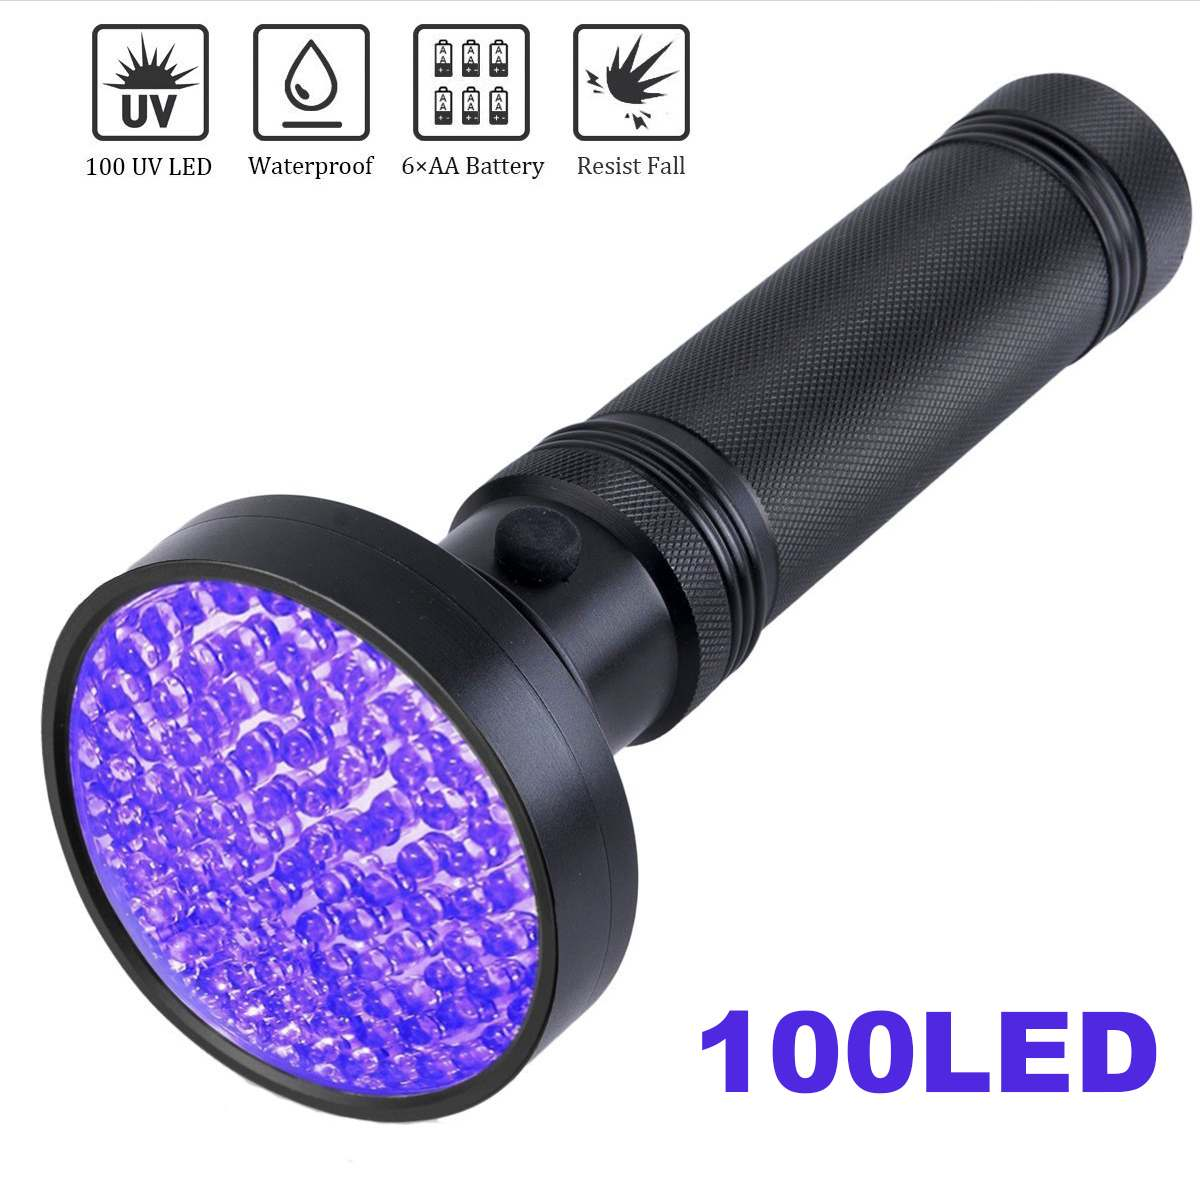 LED <font><b>UV</b></font> Flashlight 100 LEDs <font><b>395</b></font> <font><b>nm</b></font> Ultraviolet <font><b>UV</b></font> LED Torch Back Detector Light for Dog Cat Urine Pet Stains Bed Bugs Scorpions image